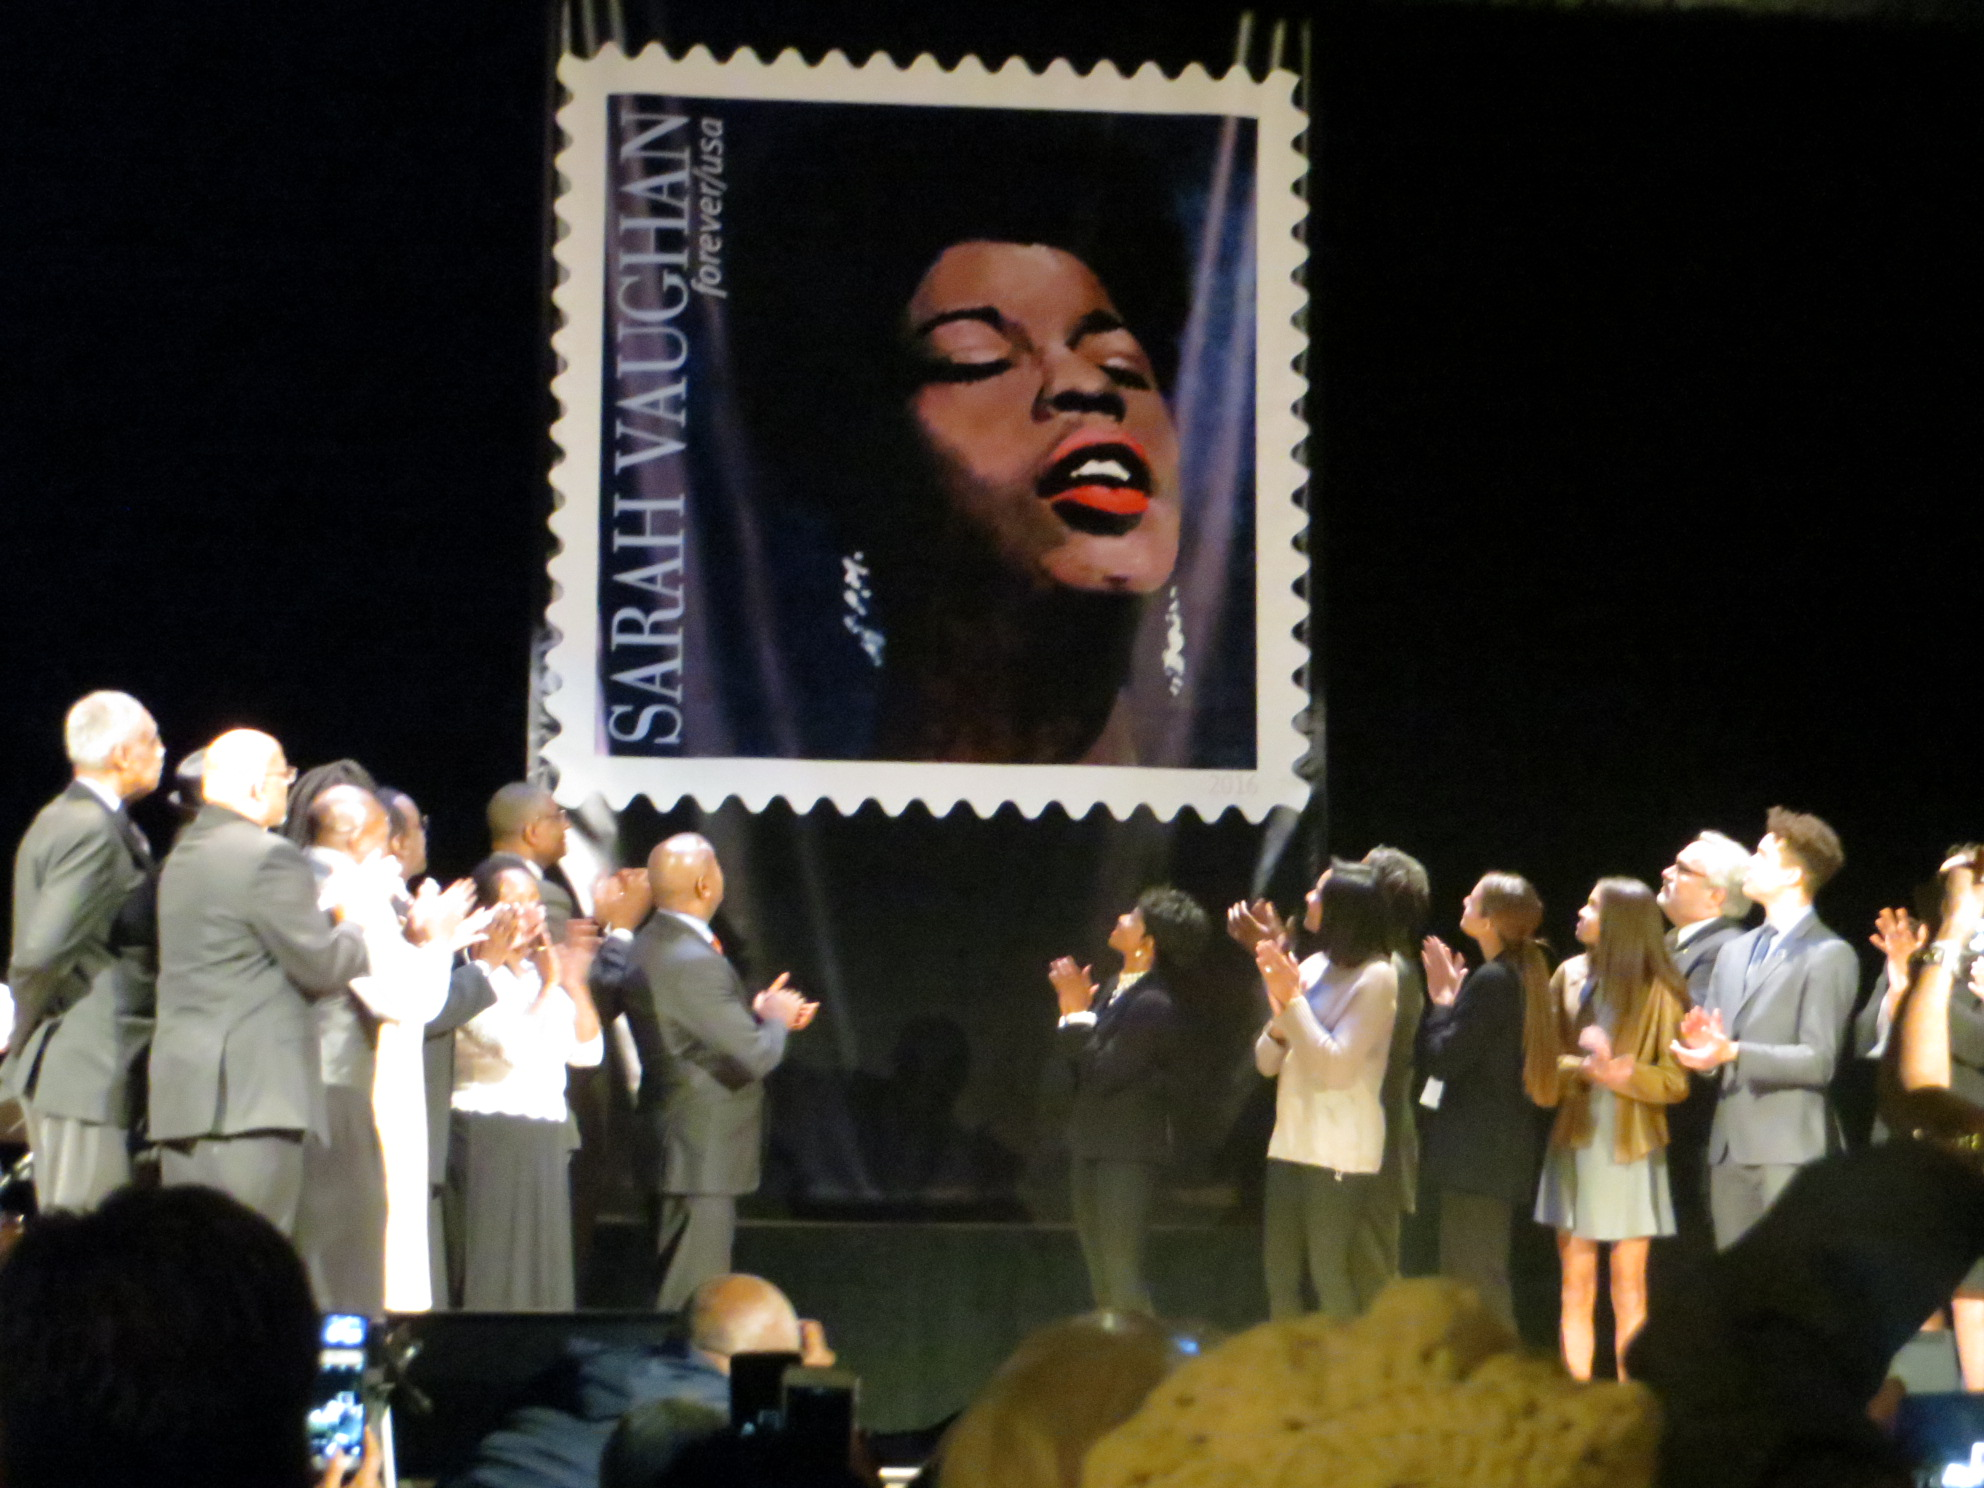 Special Guests of the event applaud at the unveiling of the Sarah Vaughan USPS Forever Stamp.